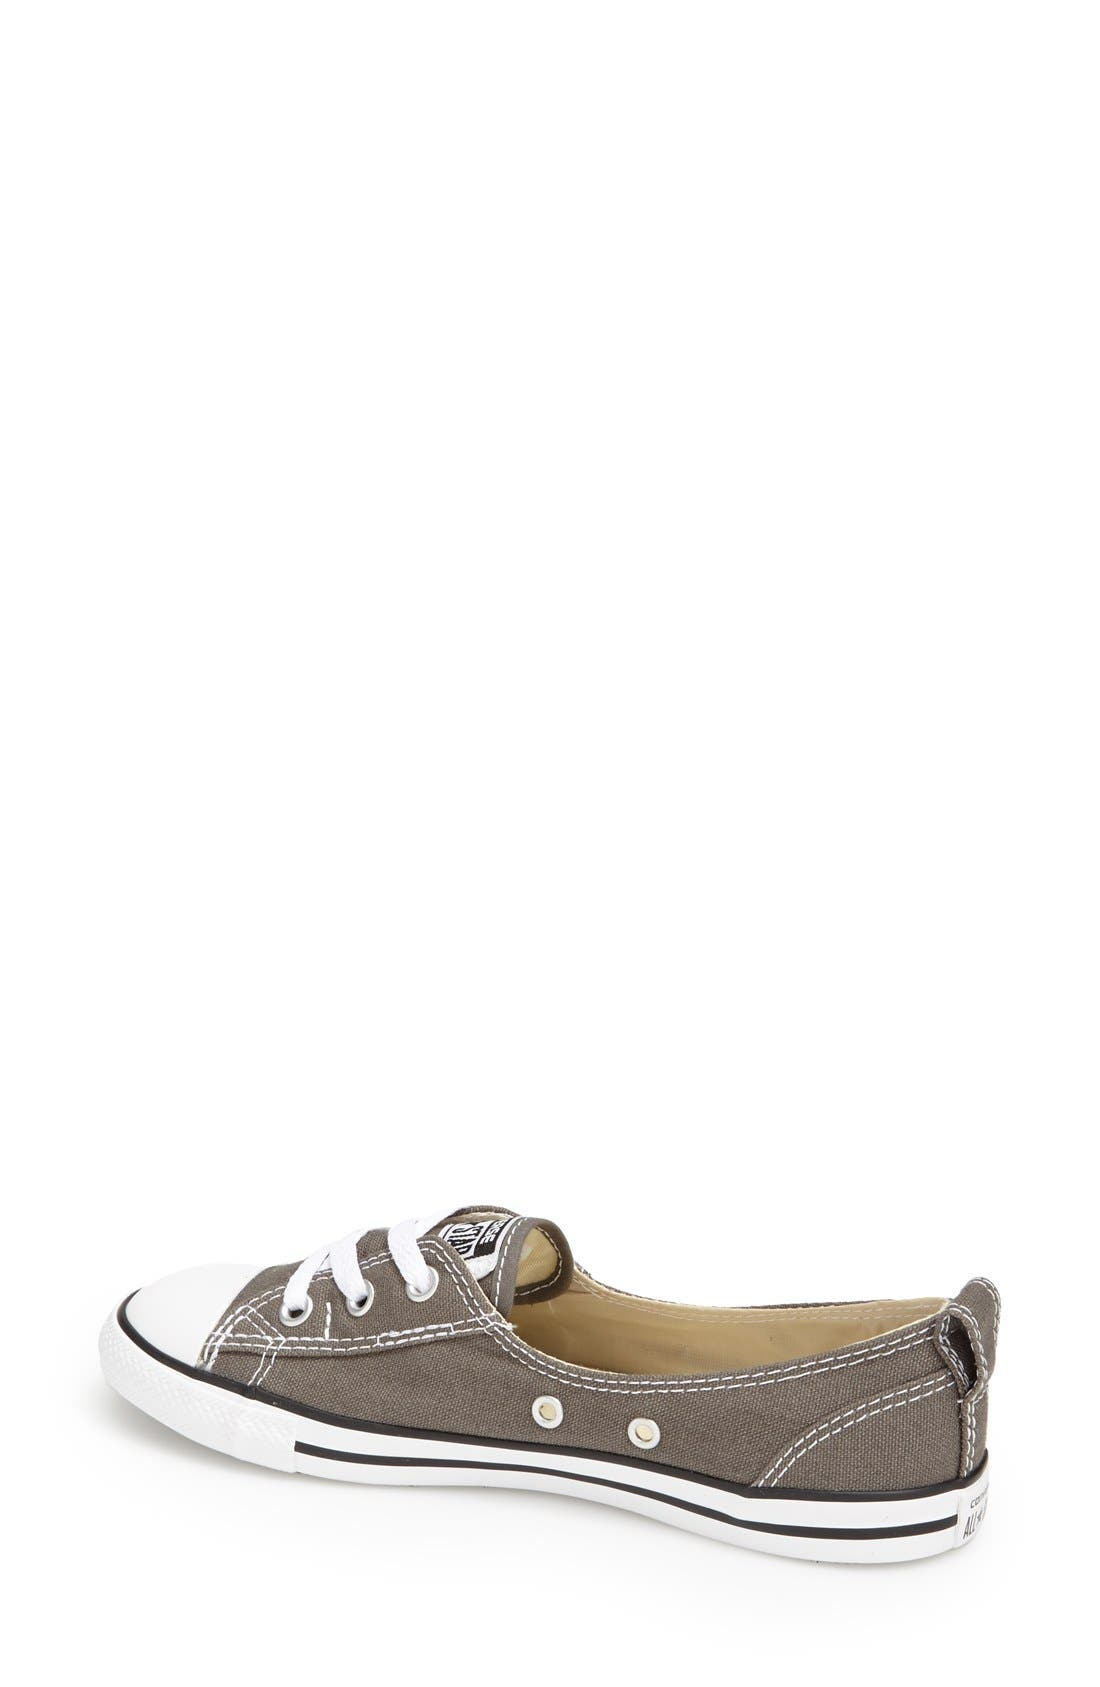 ,                             Chuck Taylor<sup>®</sup> All Star<sup>®</sup> Ballet Canvas Sneaker,                             Alternate thumbnail 14, color,                             020